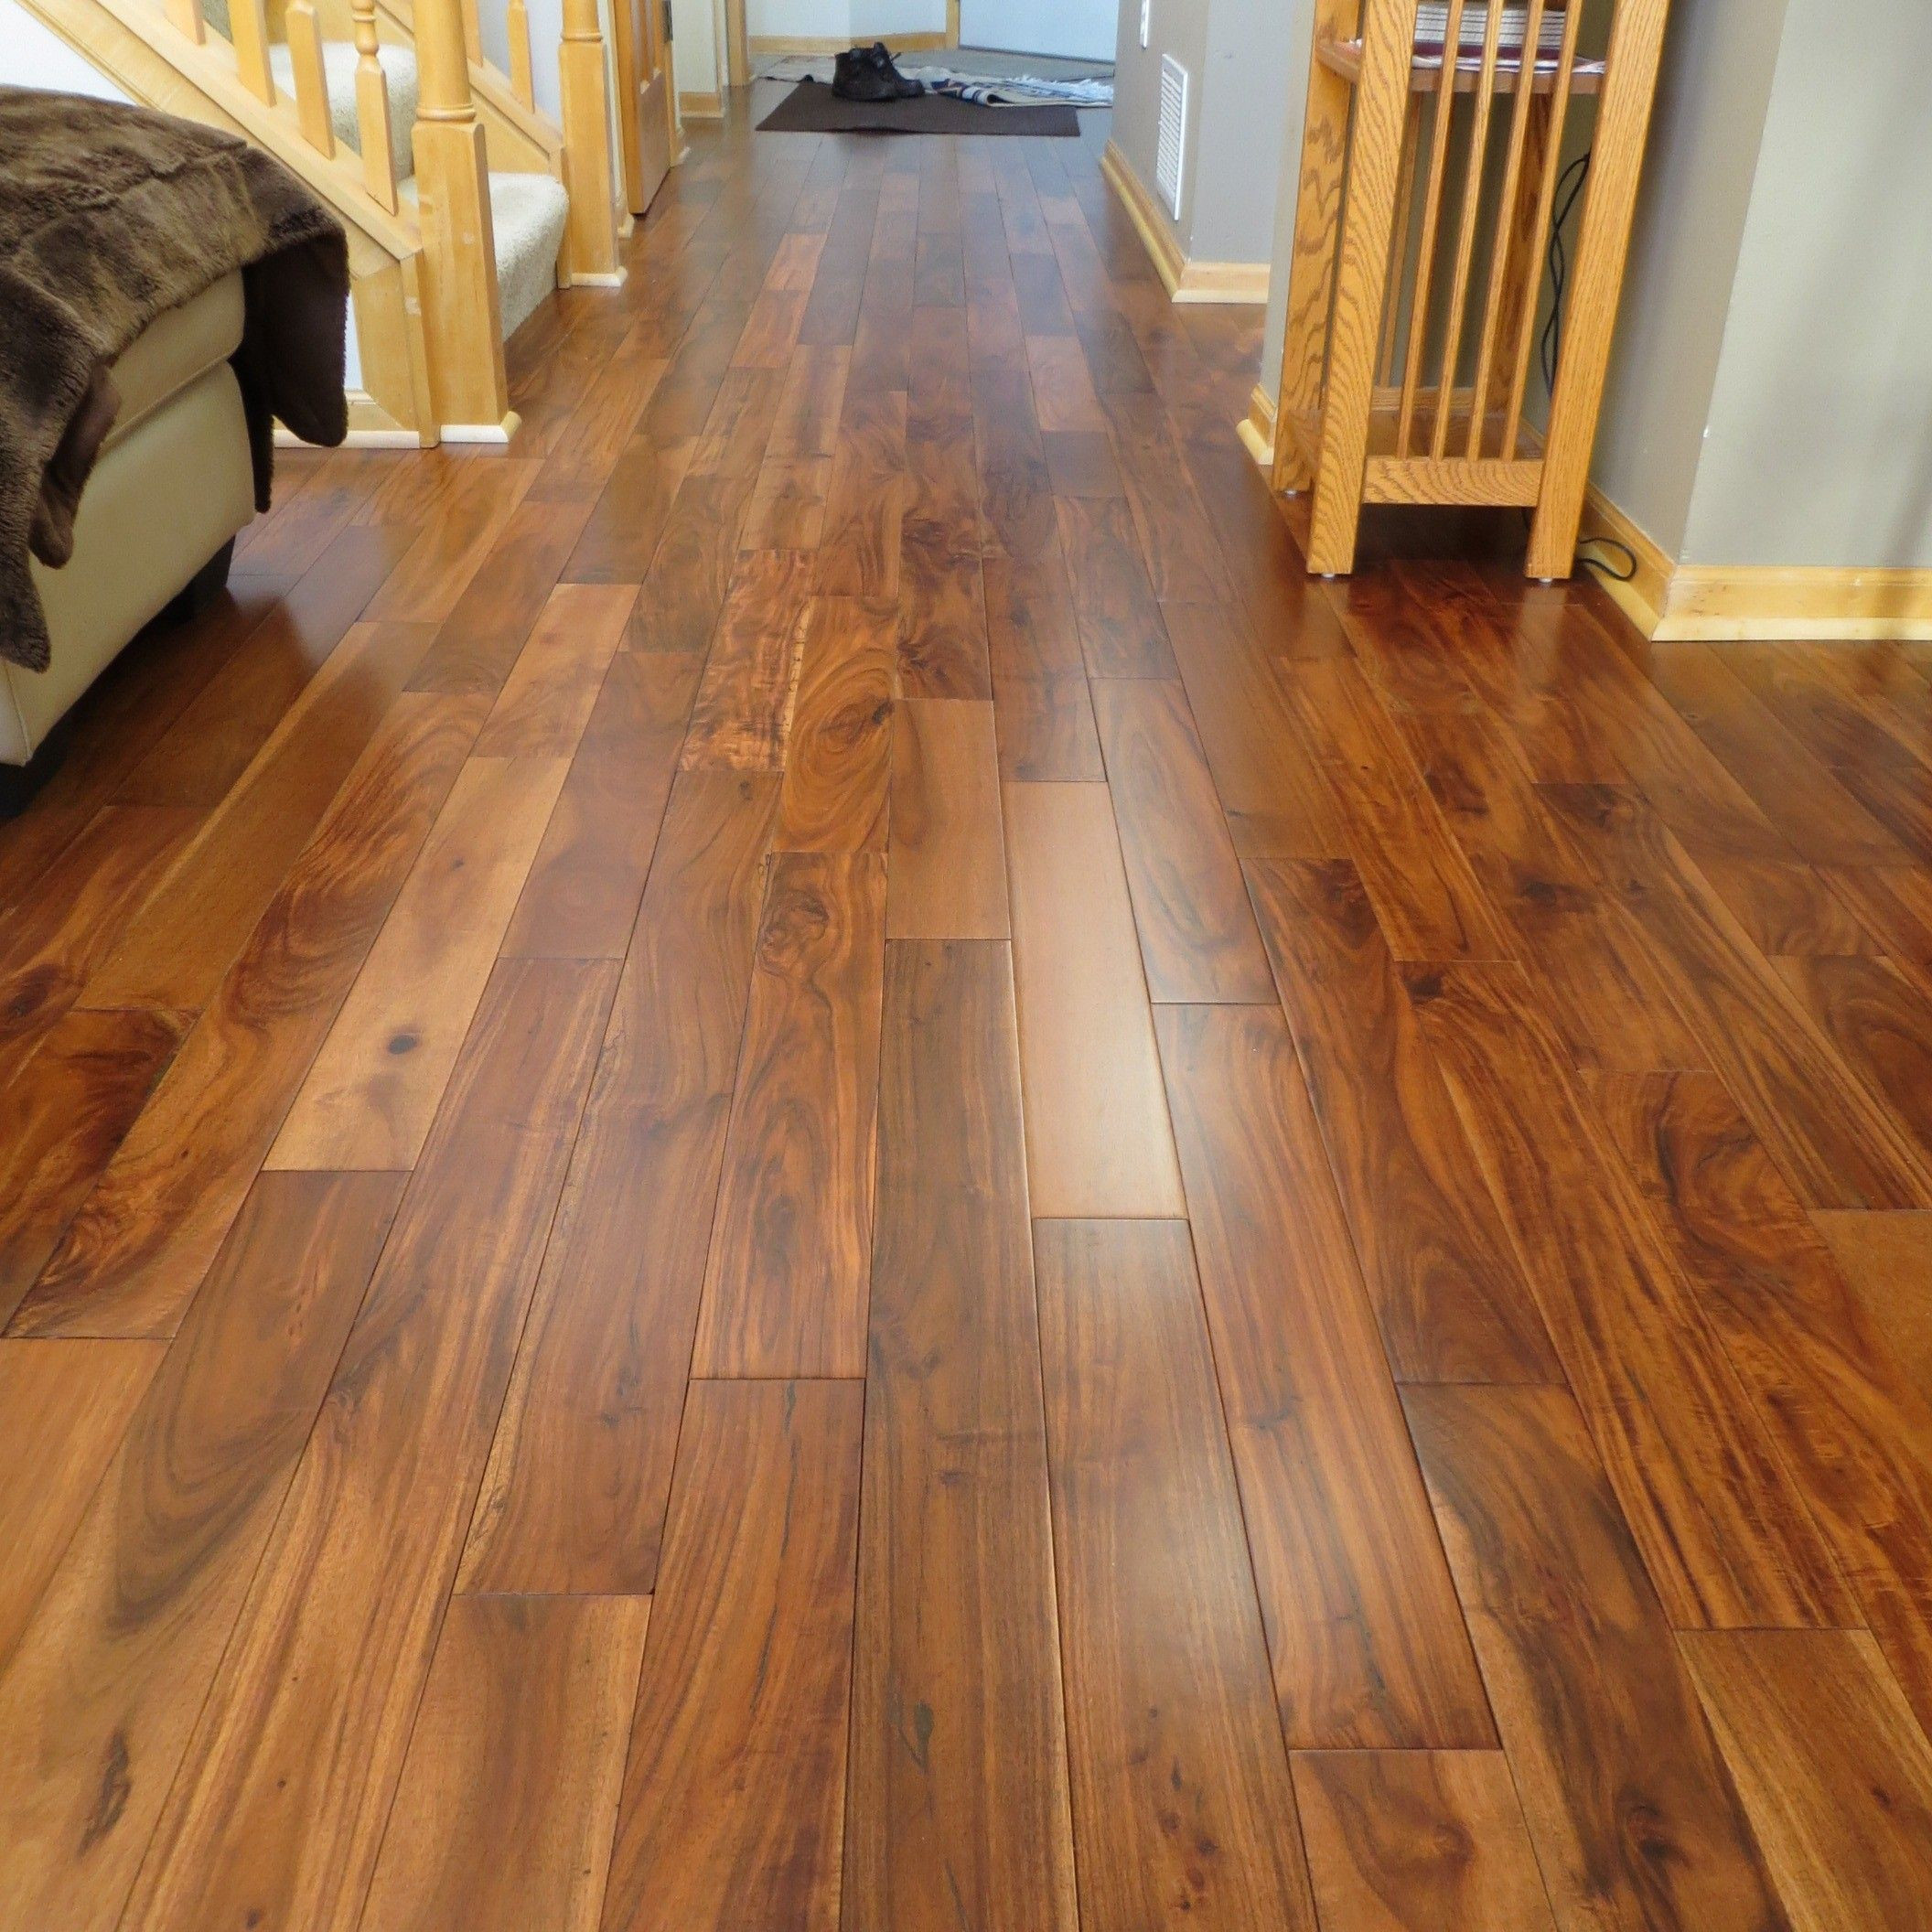 black hardwood flooring lowes of acacia wood flooring laminate wood flooring lowes laminate flooring for acacia asian walnut bronze plank hardwood flooring i loooooove this floor